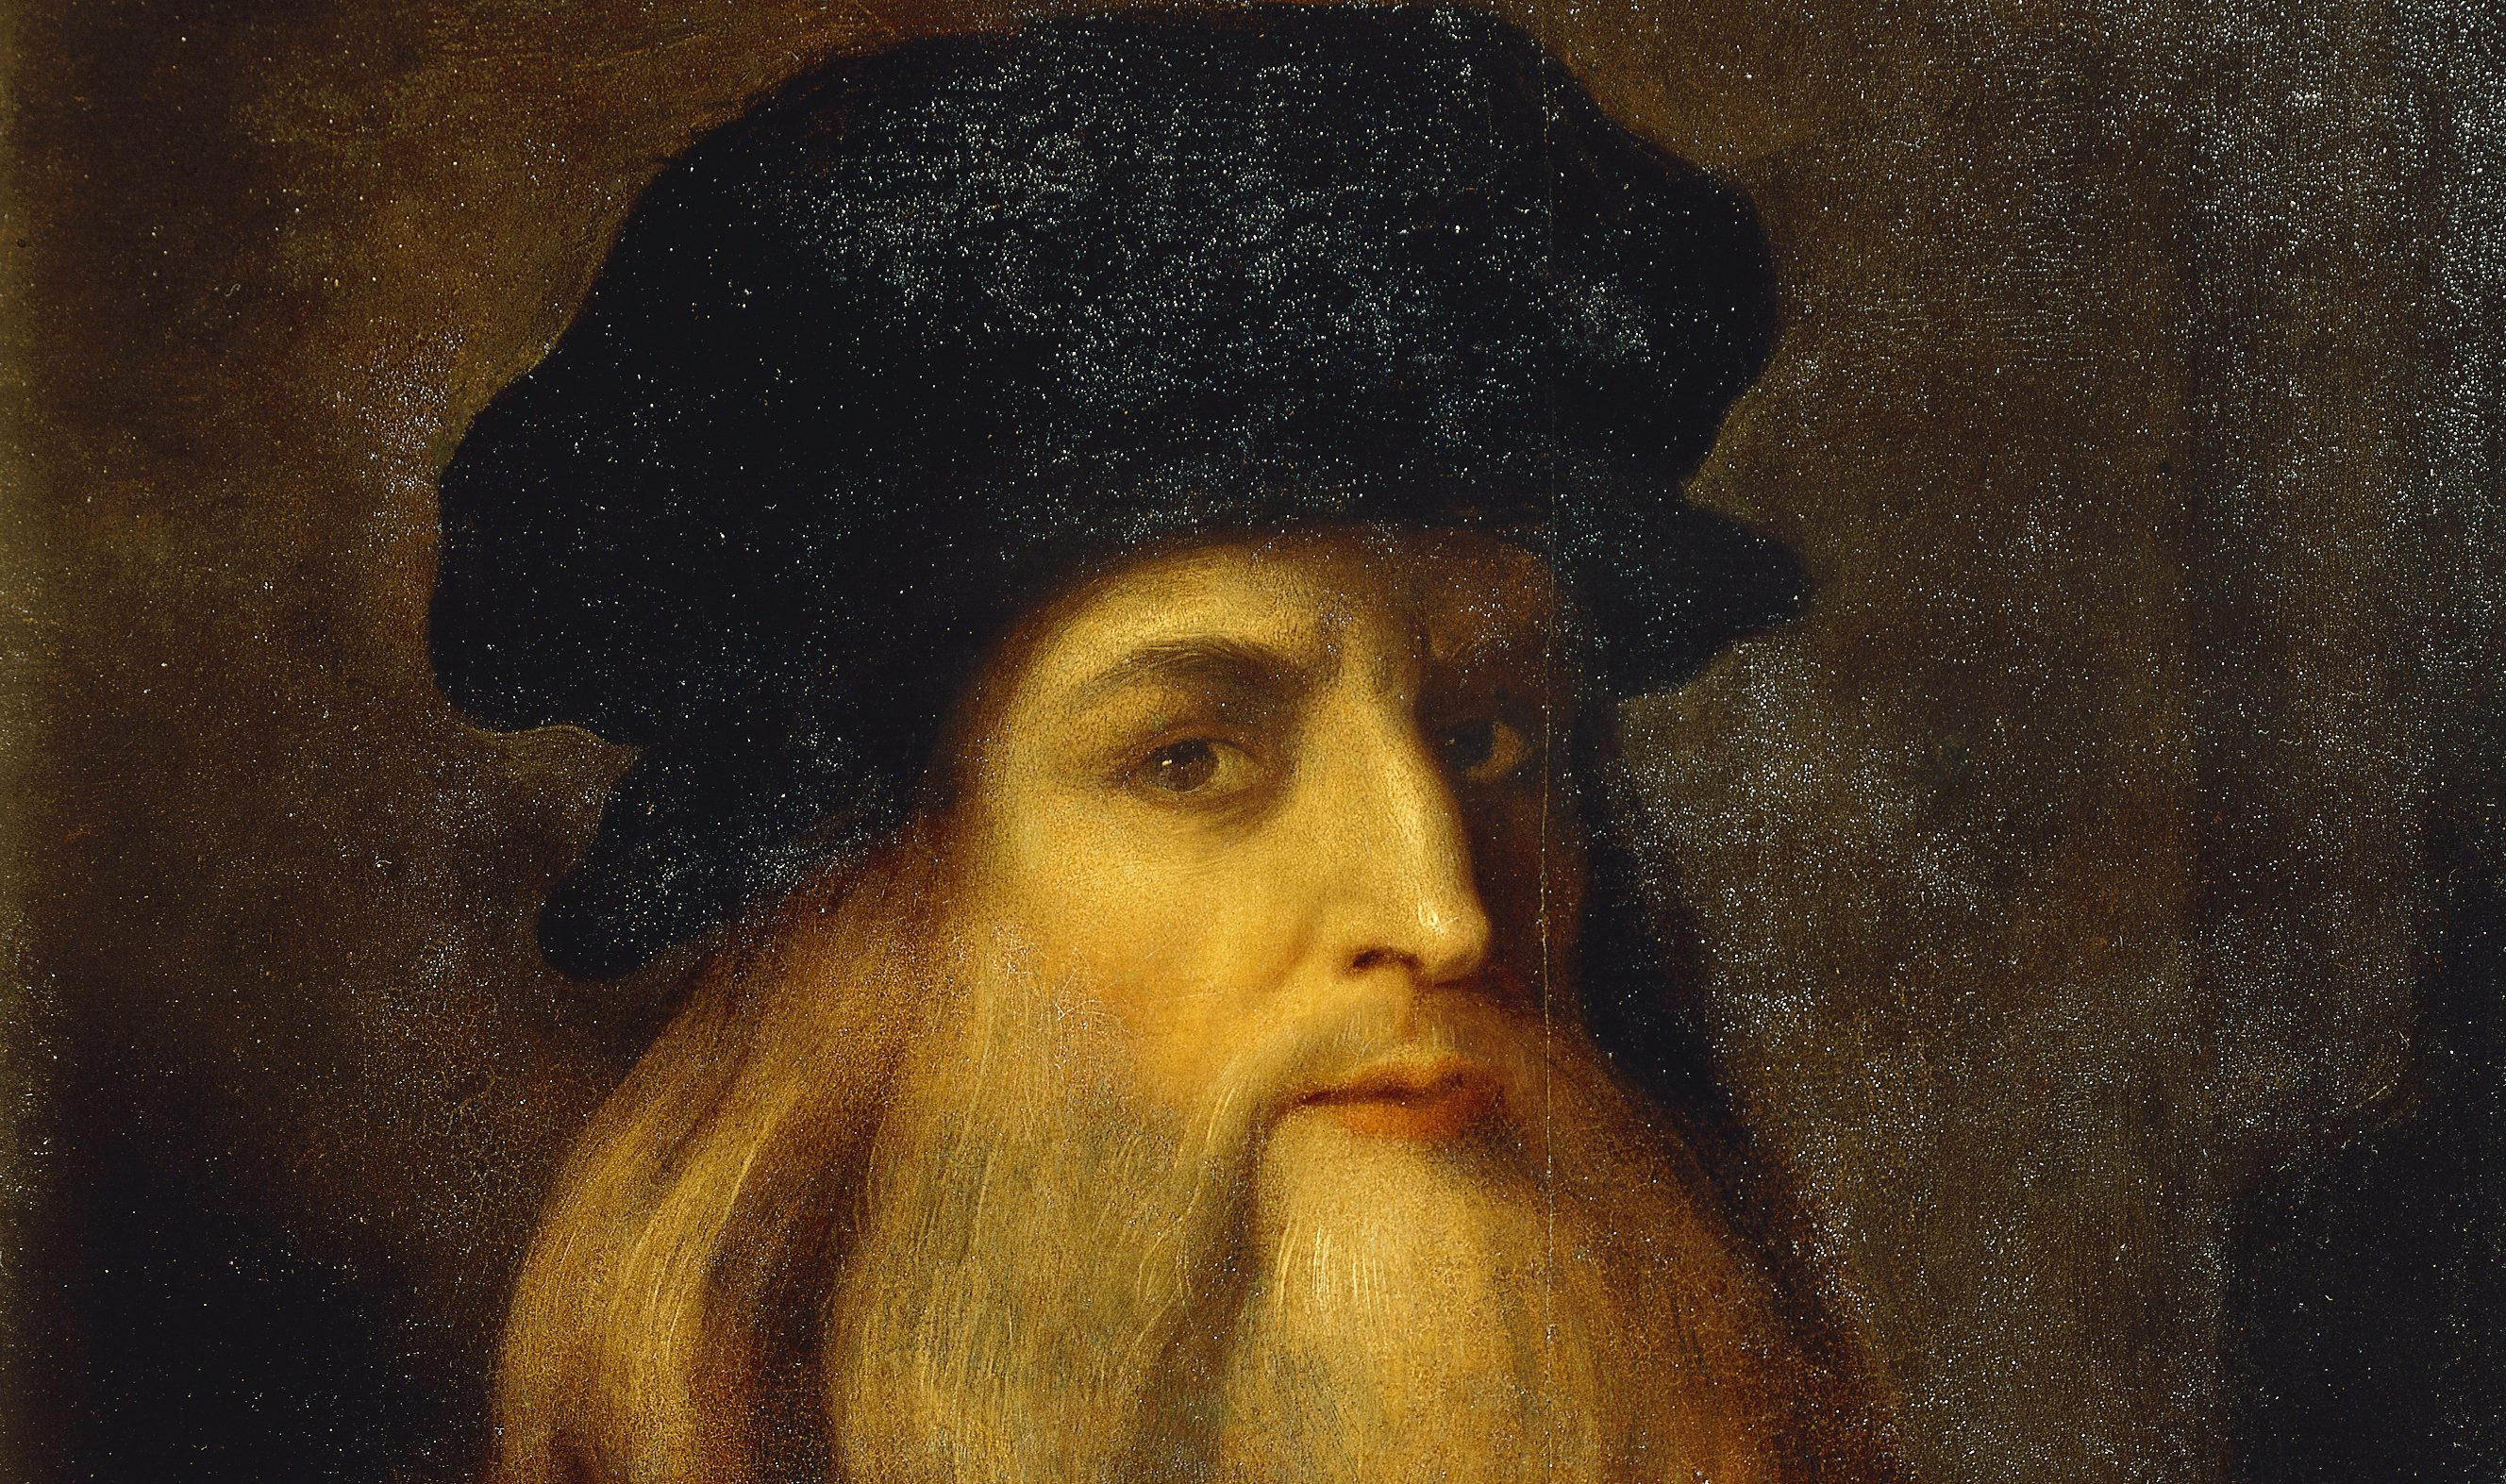 ITALY – APRIL 09:  Florence, Galleria Degli Uffizi (Uffizi Gallery) Presumed self-portrait by Leonardo da Vinci (1452-1519), an Unknown Artist. (Photo by DeAgostini/Getty Images)